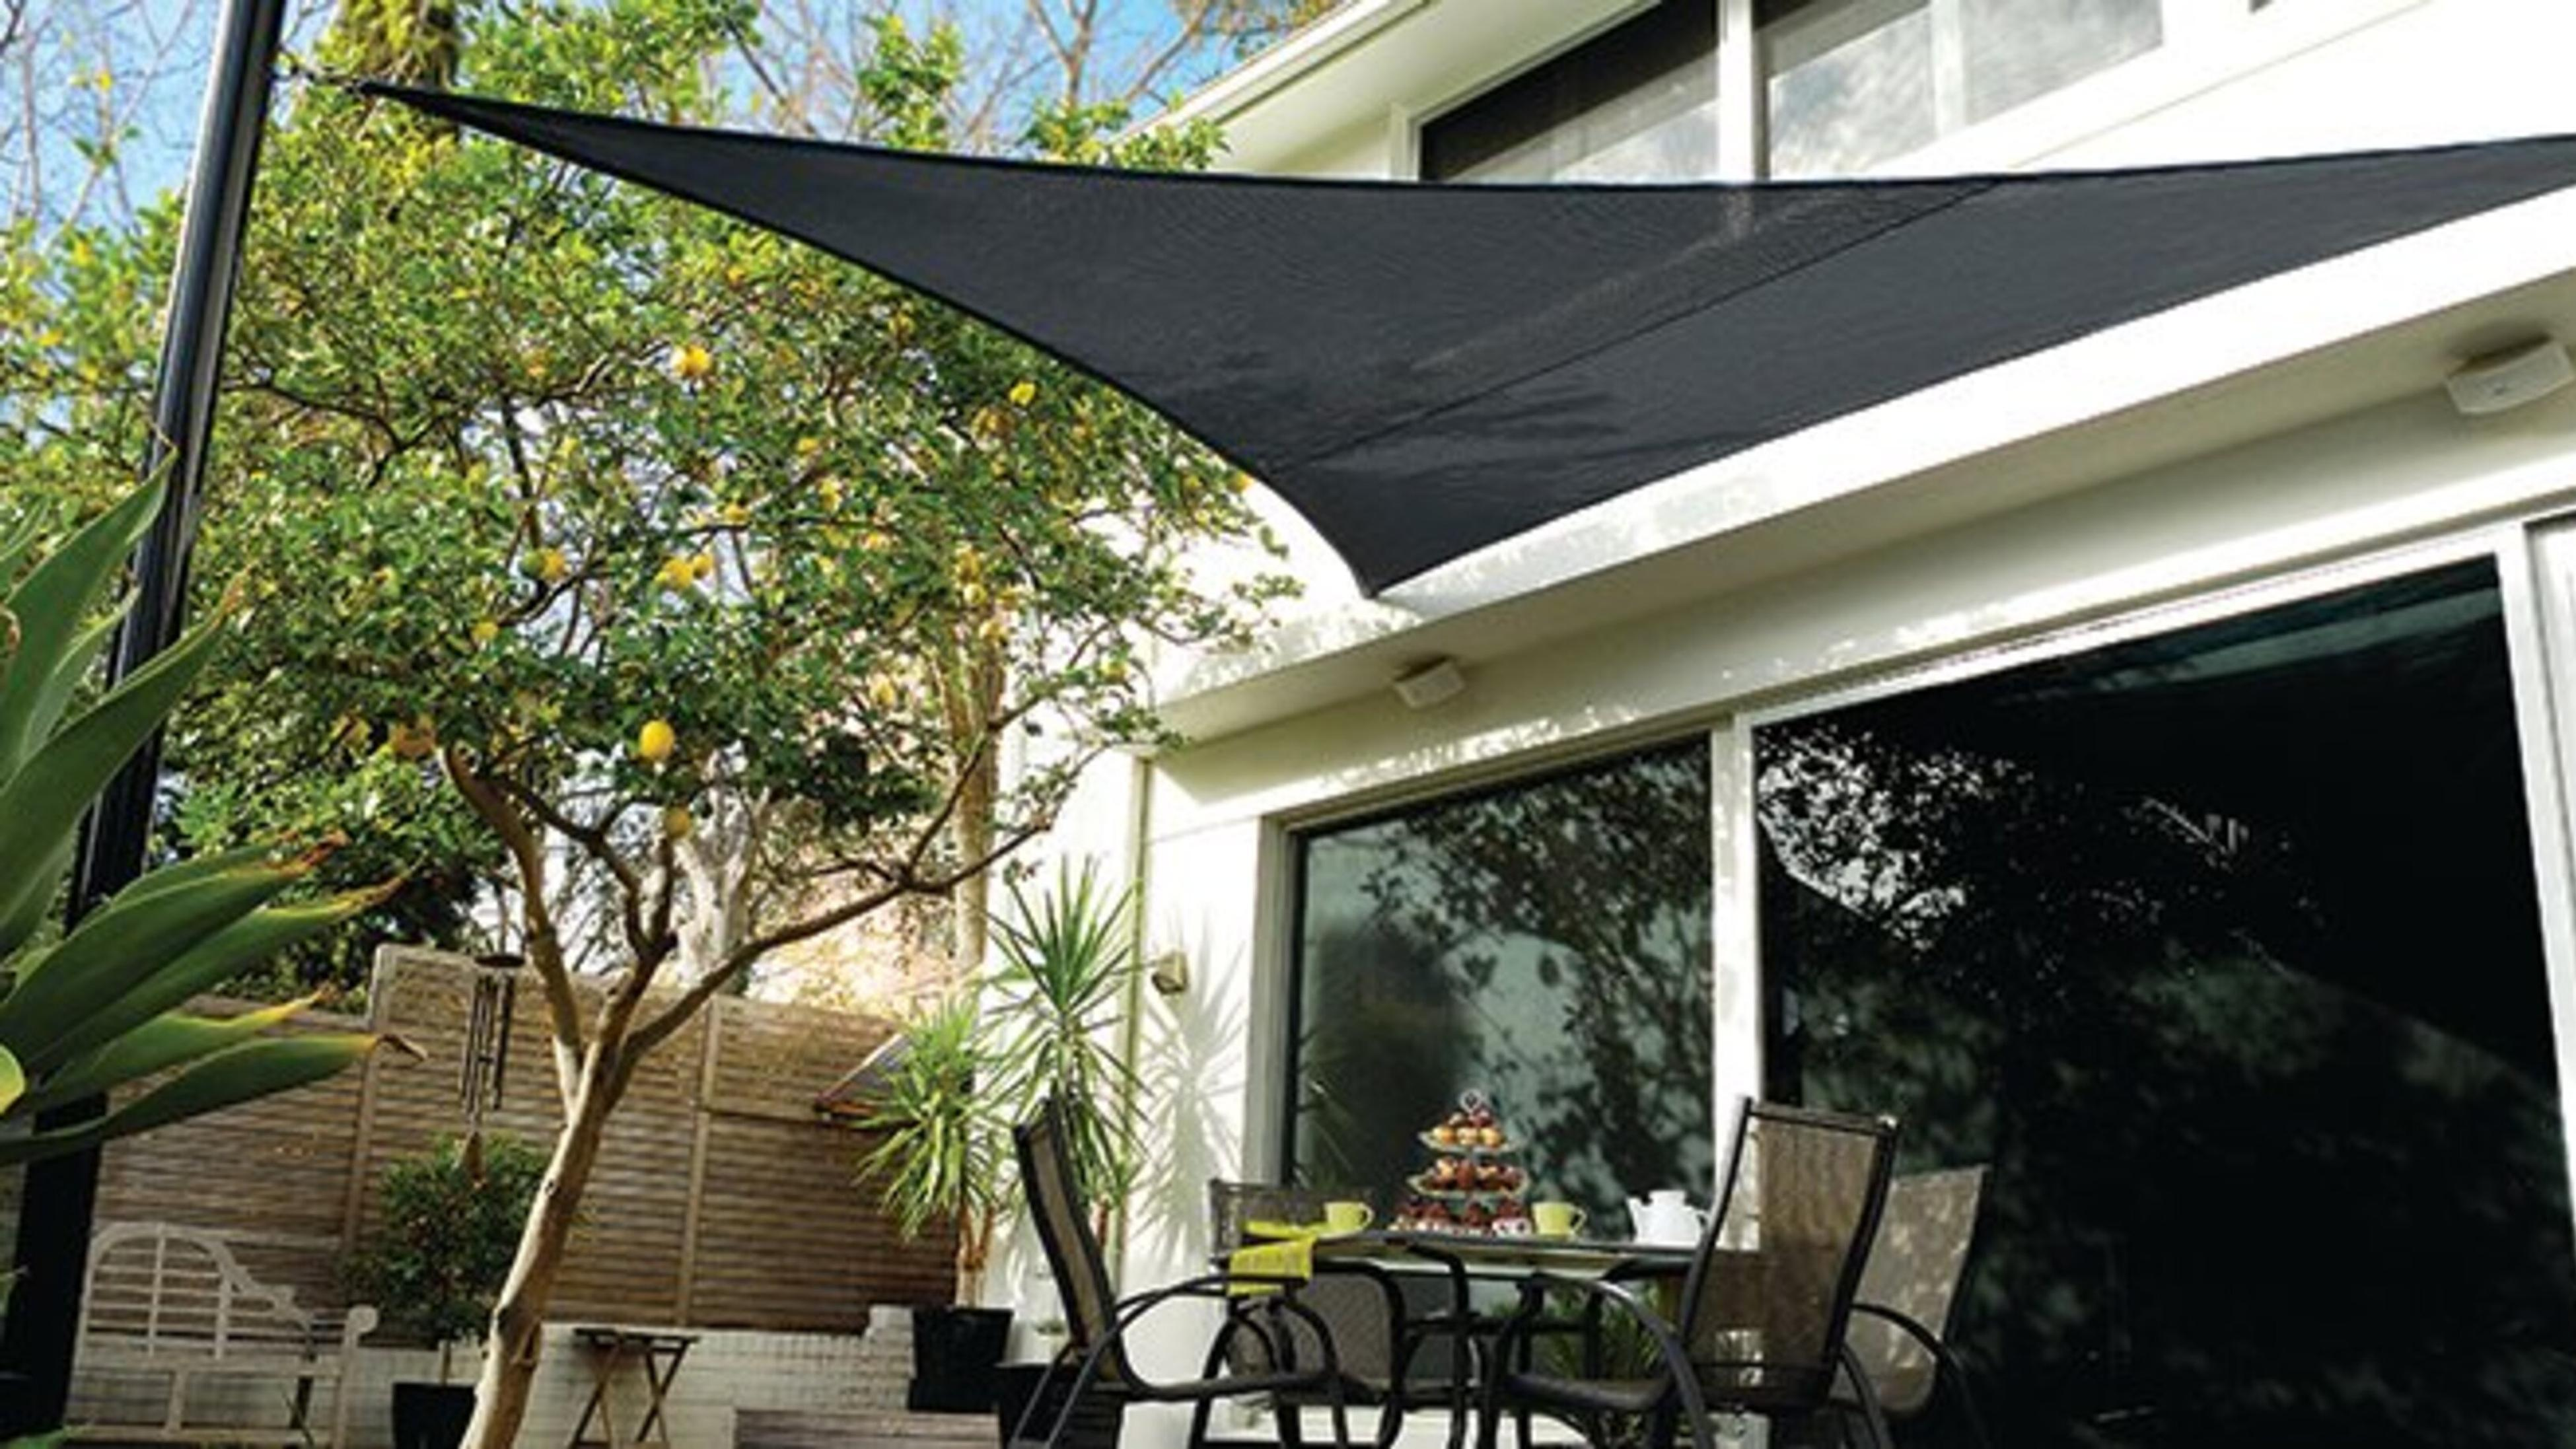 Black shade sail in outdoor area with trees.